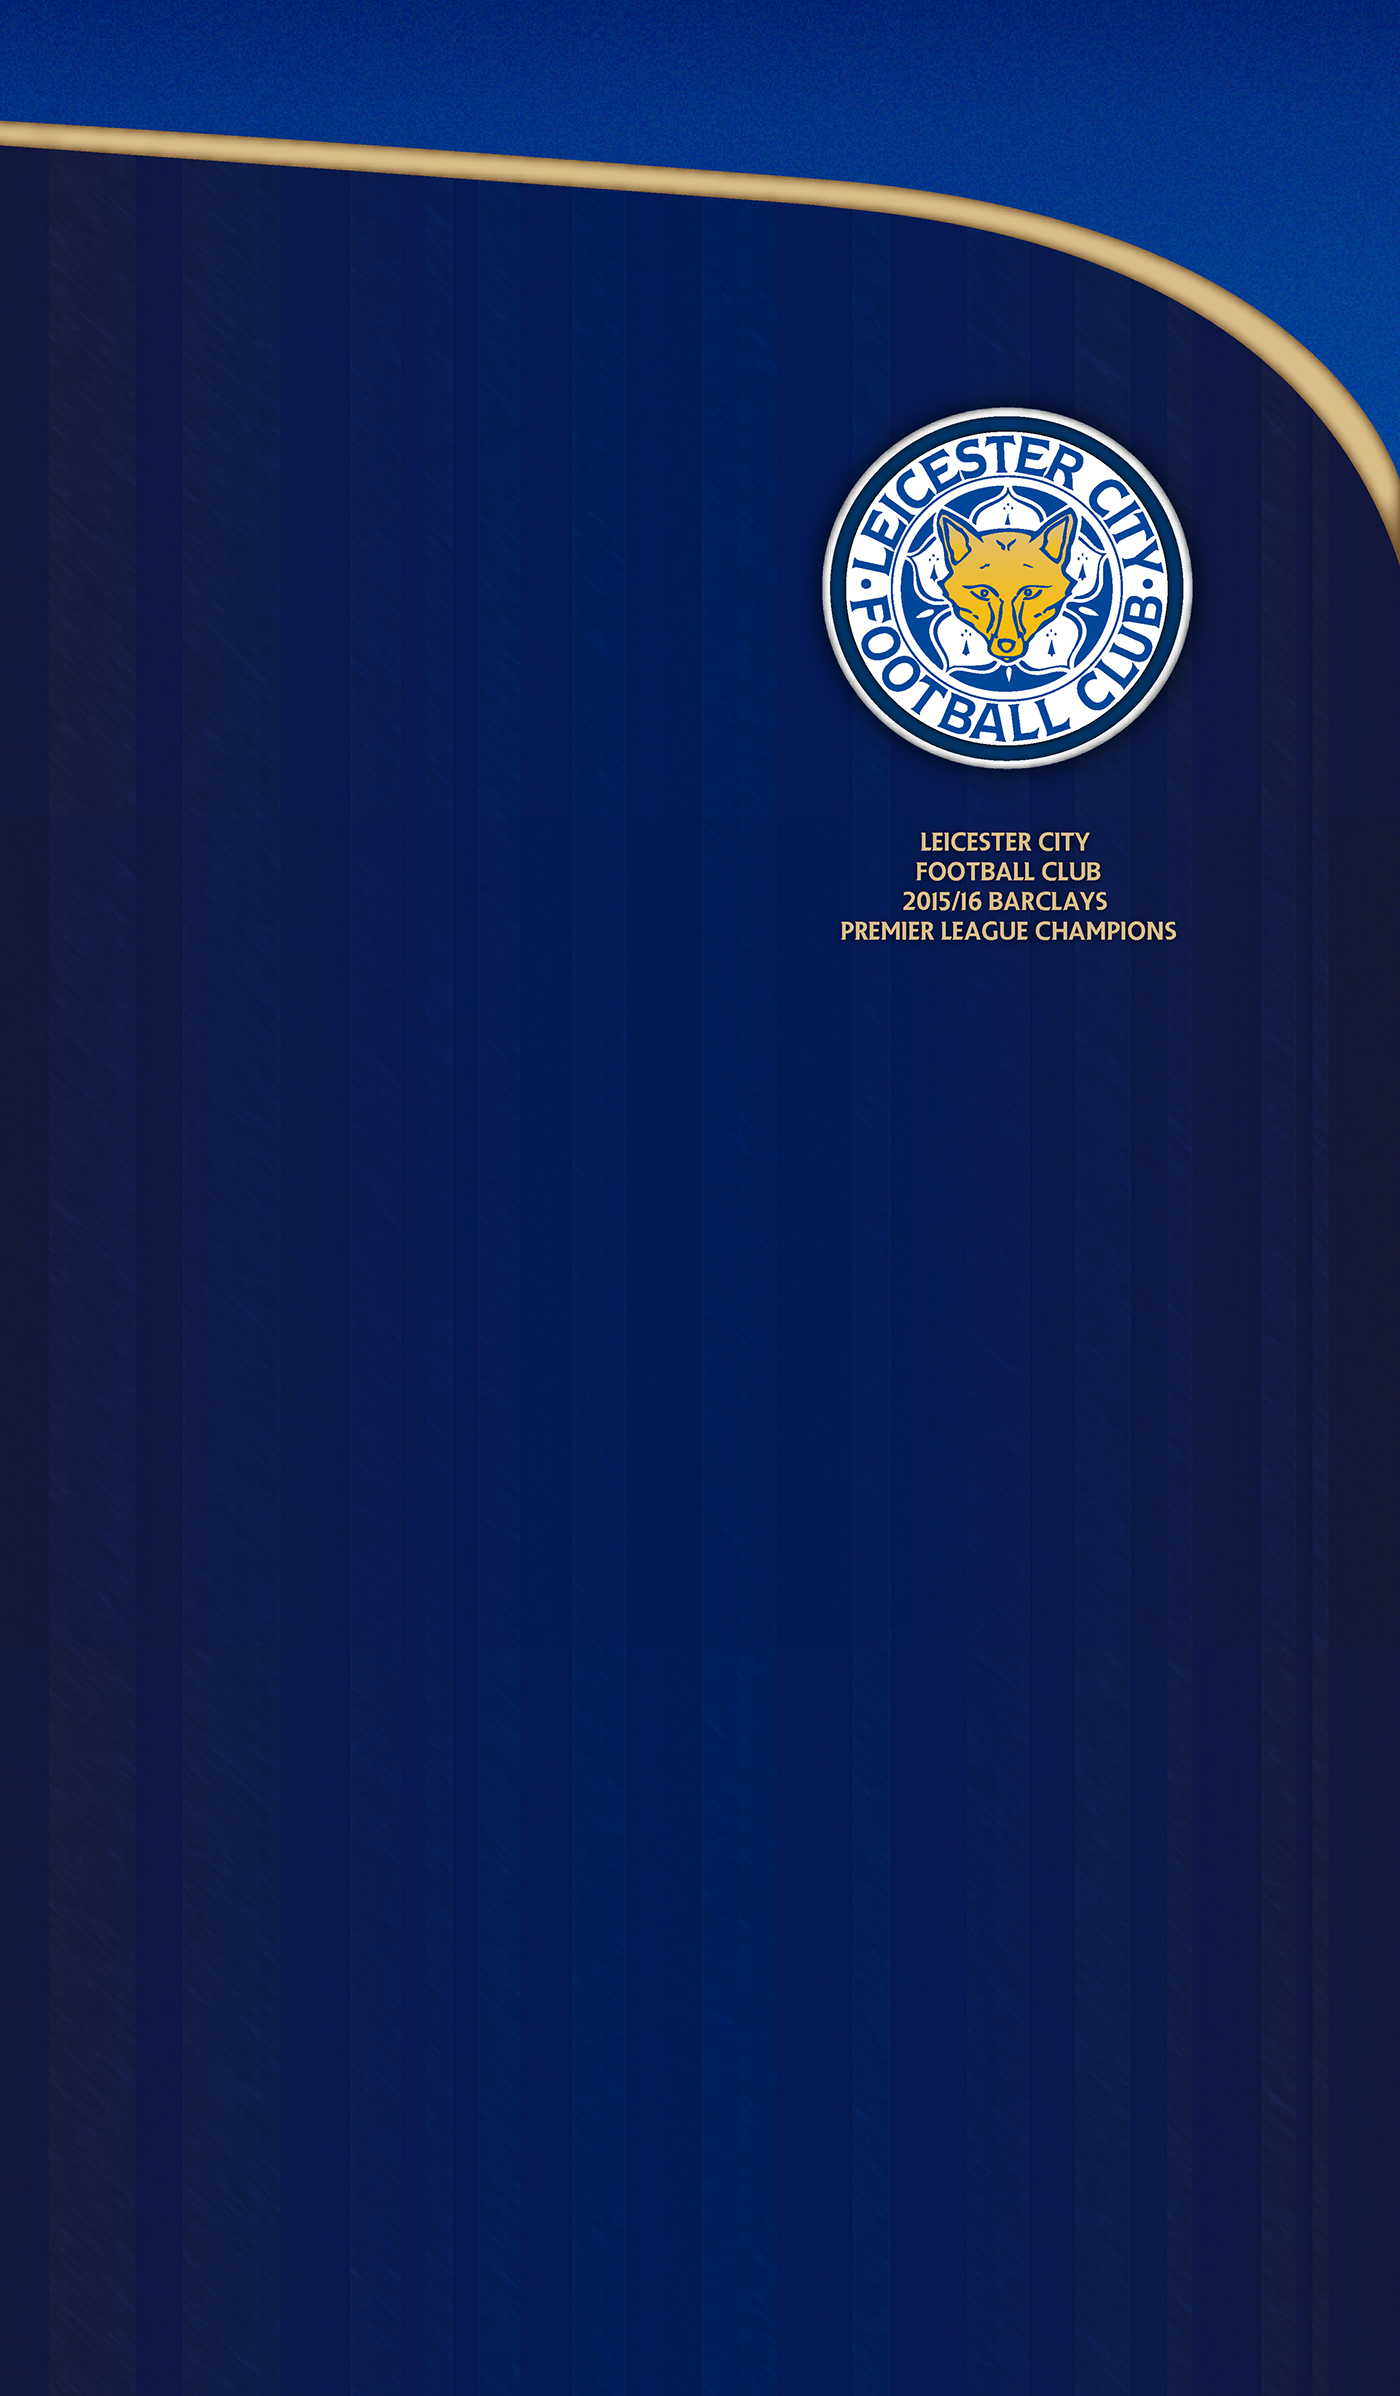 Leicester City F C Wallpapers Hd Backgrounds 90 images in 1400x2396